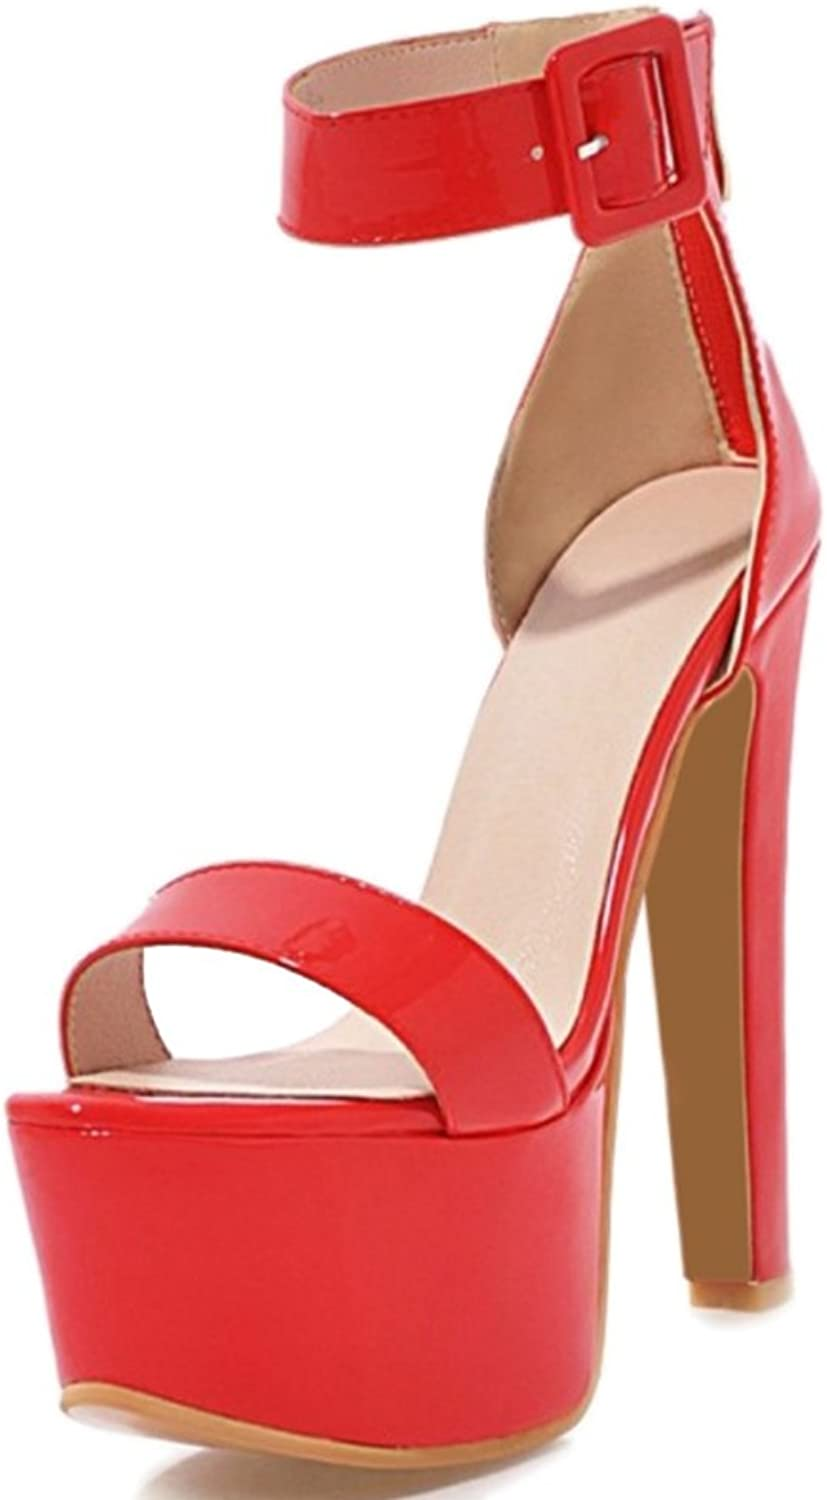 CuteFlats Woemn Dressy Sandals with High Stiletto and Thick Platform